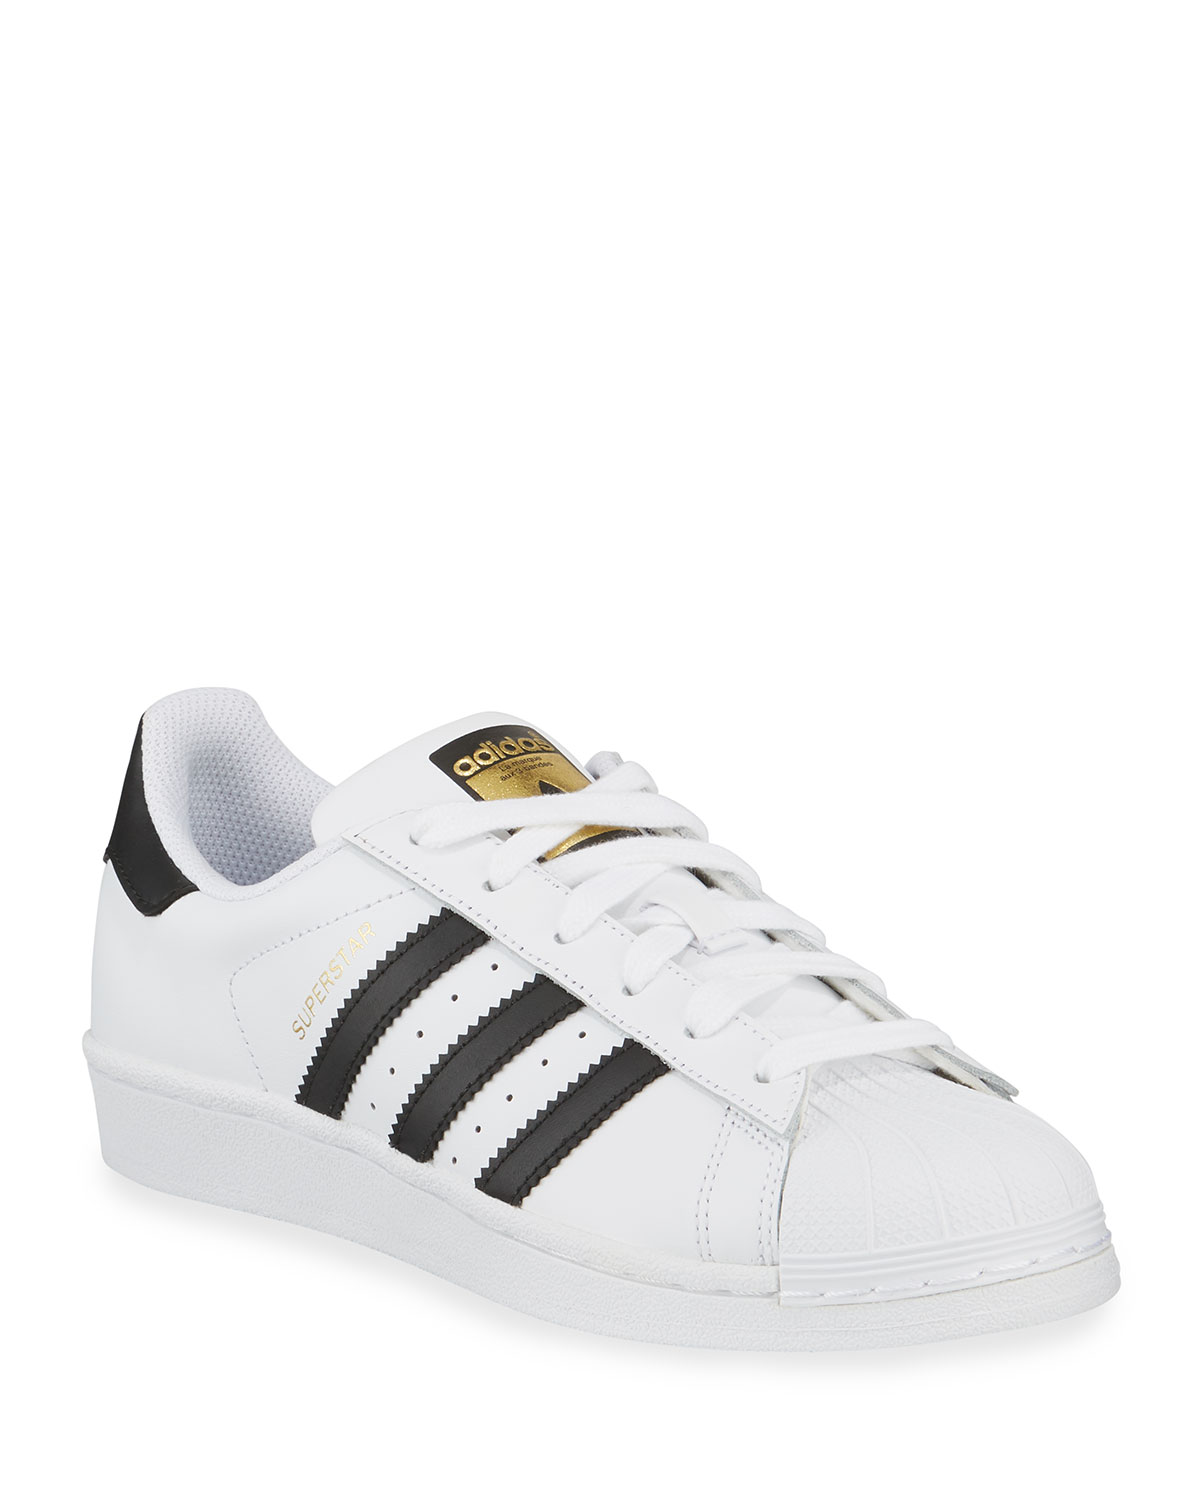 f29aa0787870 Adidas Superstar Classic Sneakers